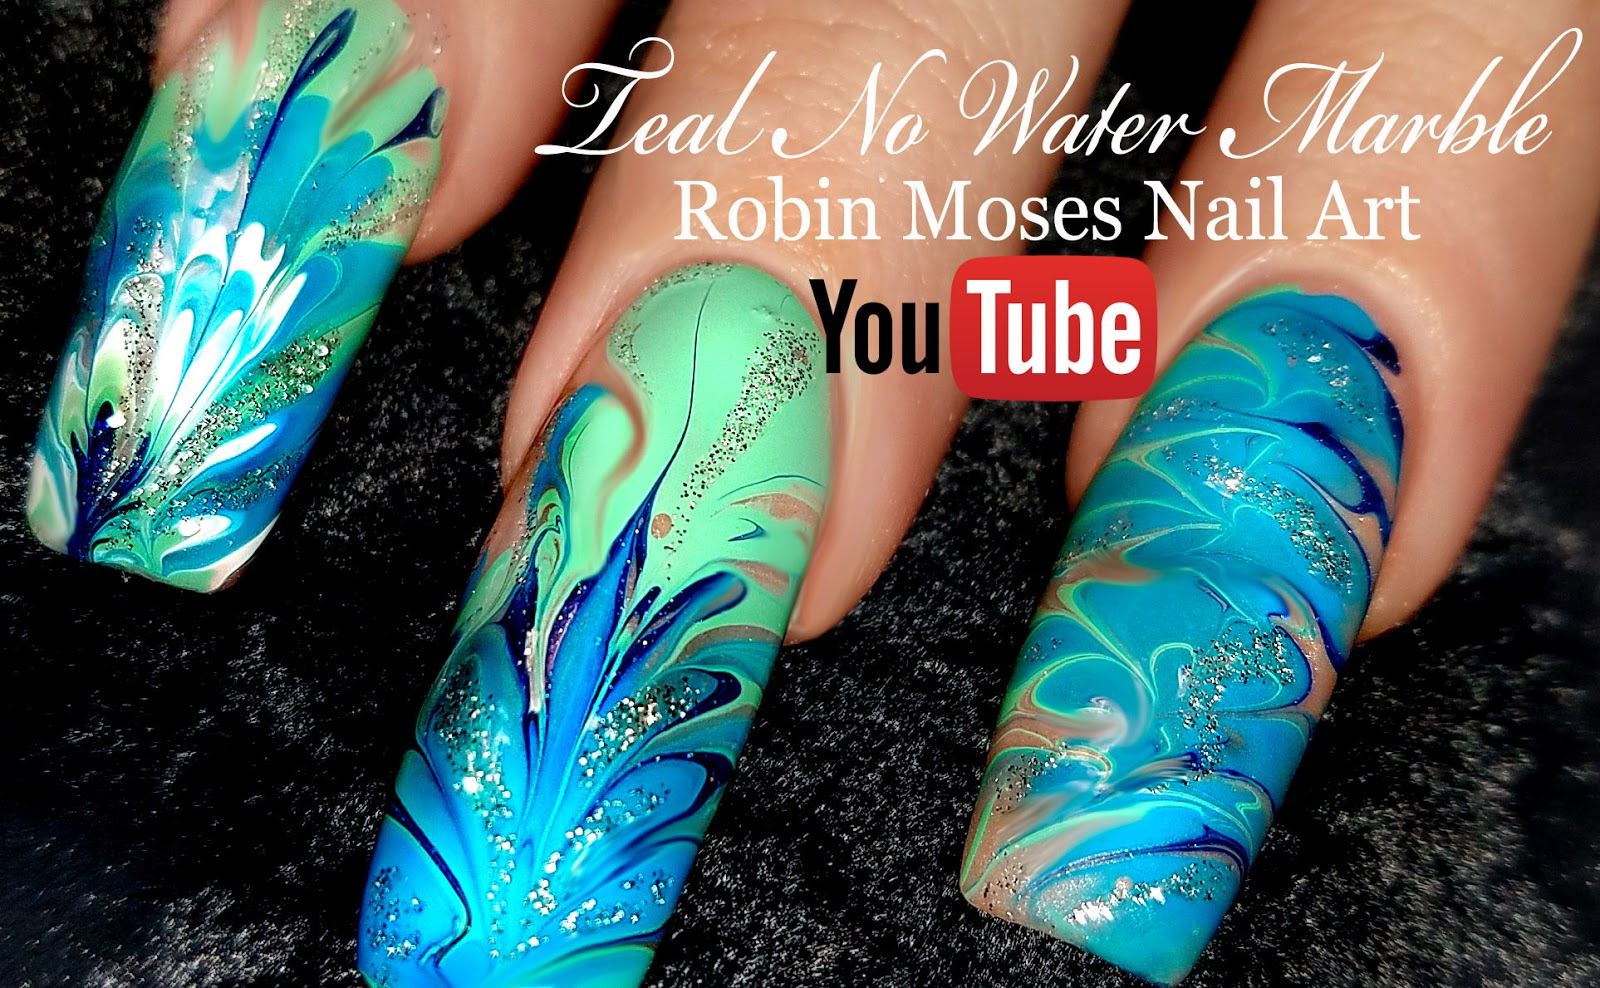 Nail Art By Robin Moses Lavender And Pink No Water Dry Drag Marble